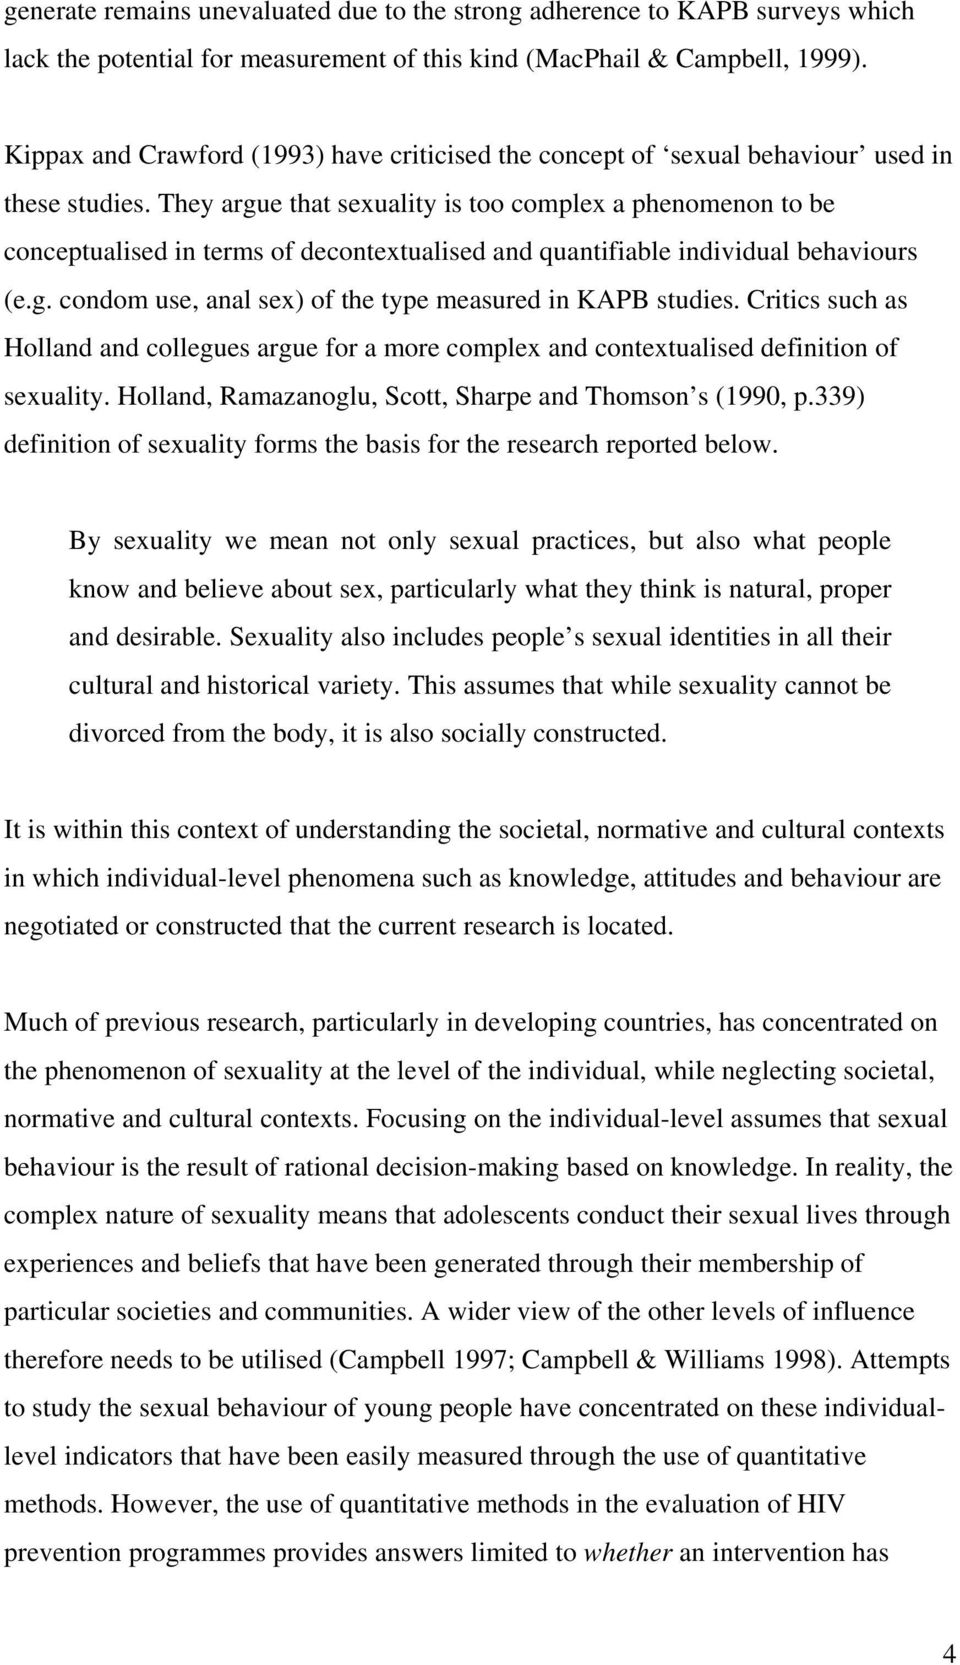 They argue that sexuality is too complex a phenomenon to be conceptualised in terms of decontextualised and quantifiable individual behaviours (e.g. condom use, anal sex) of the type measured in KAPB studies.